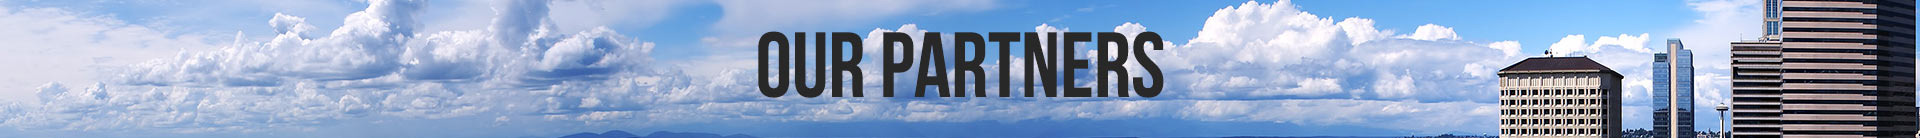 Partners-Banner2